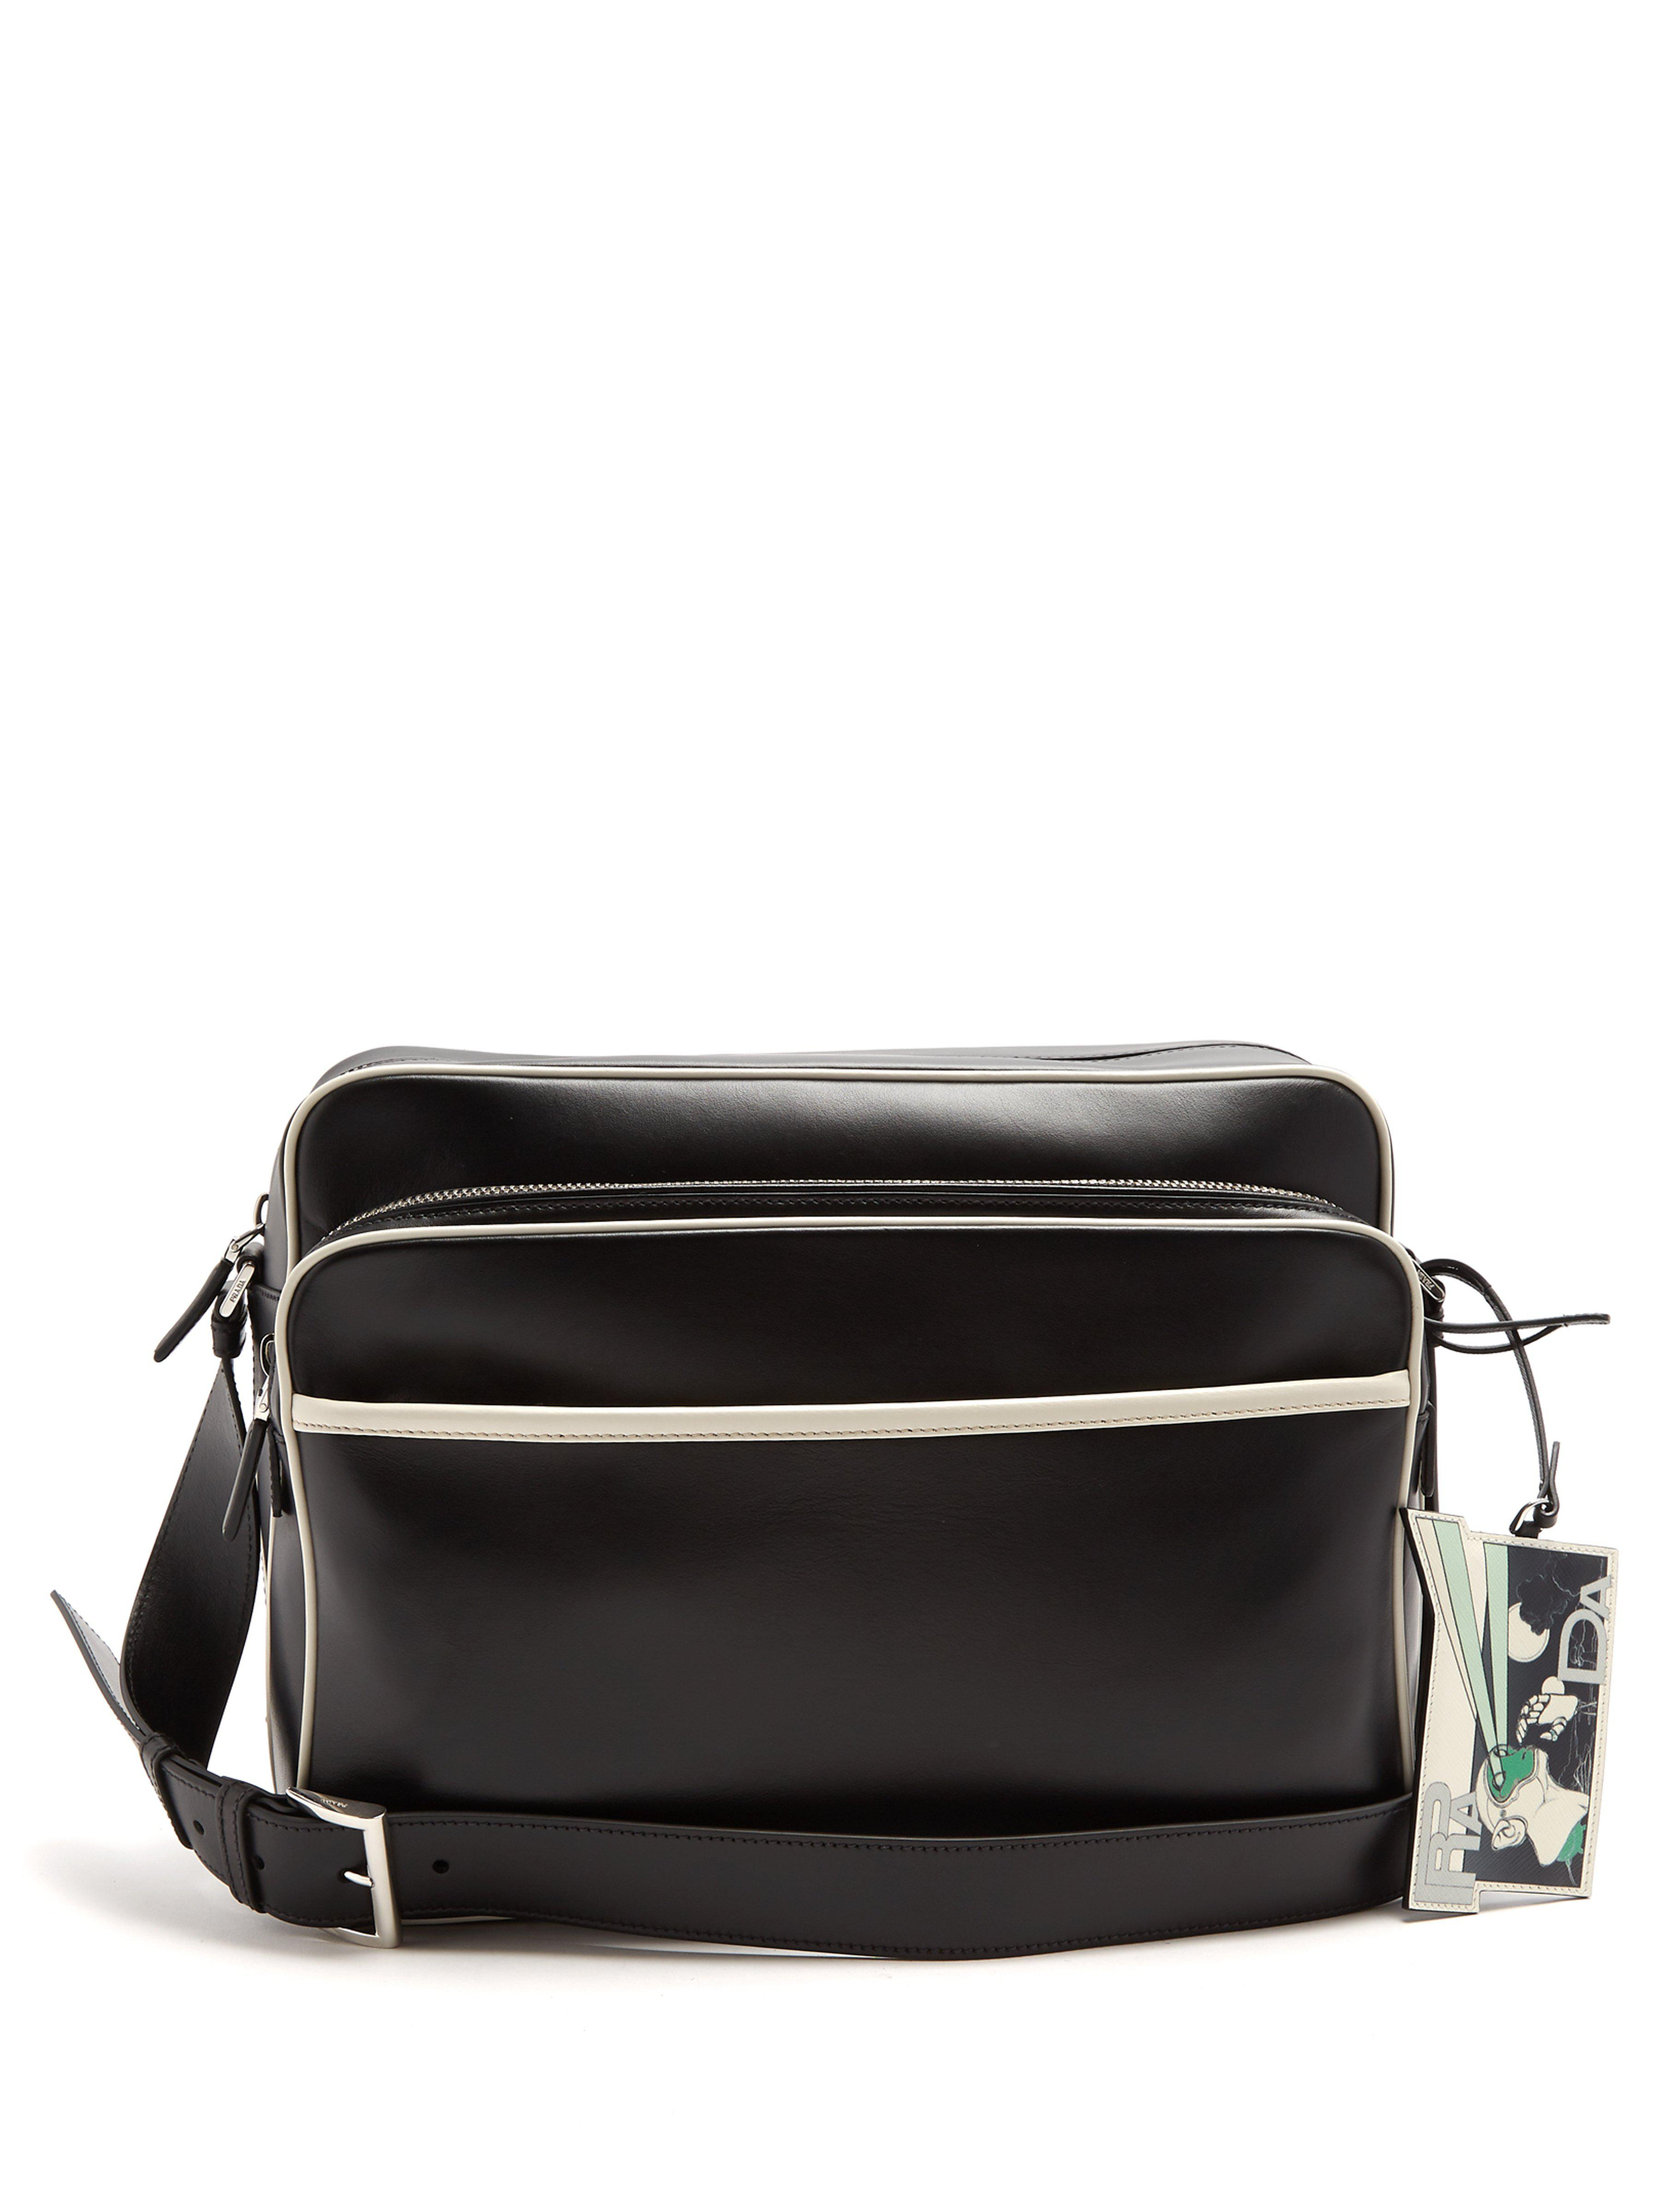 a9c5501bd151 Prada Contrast-piping Leather Messenger Bag in Black for Men - Lyst